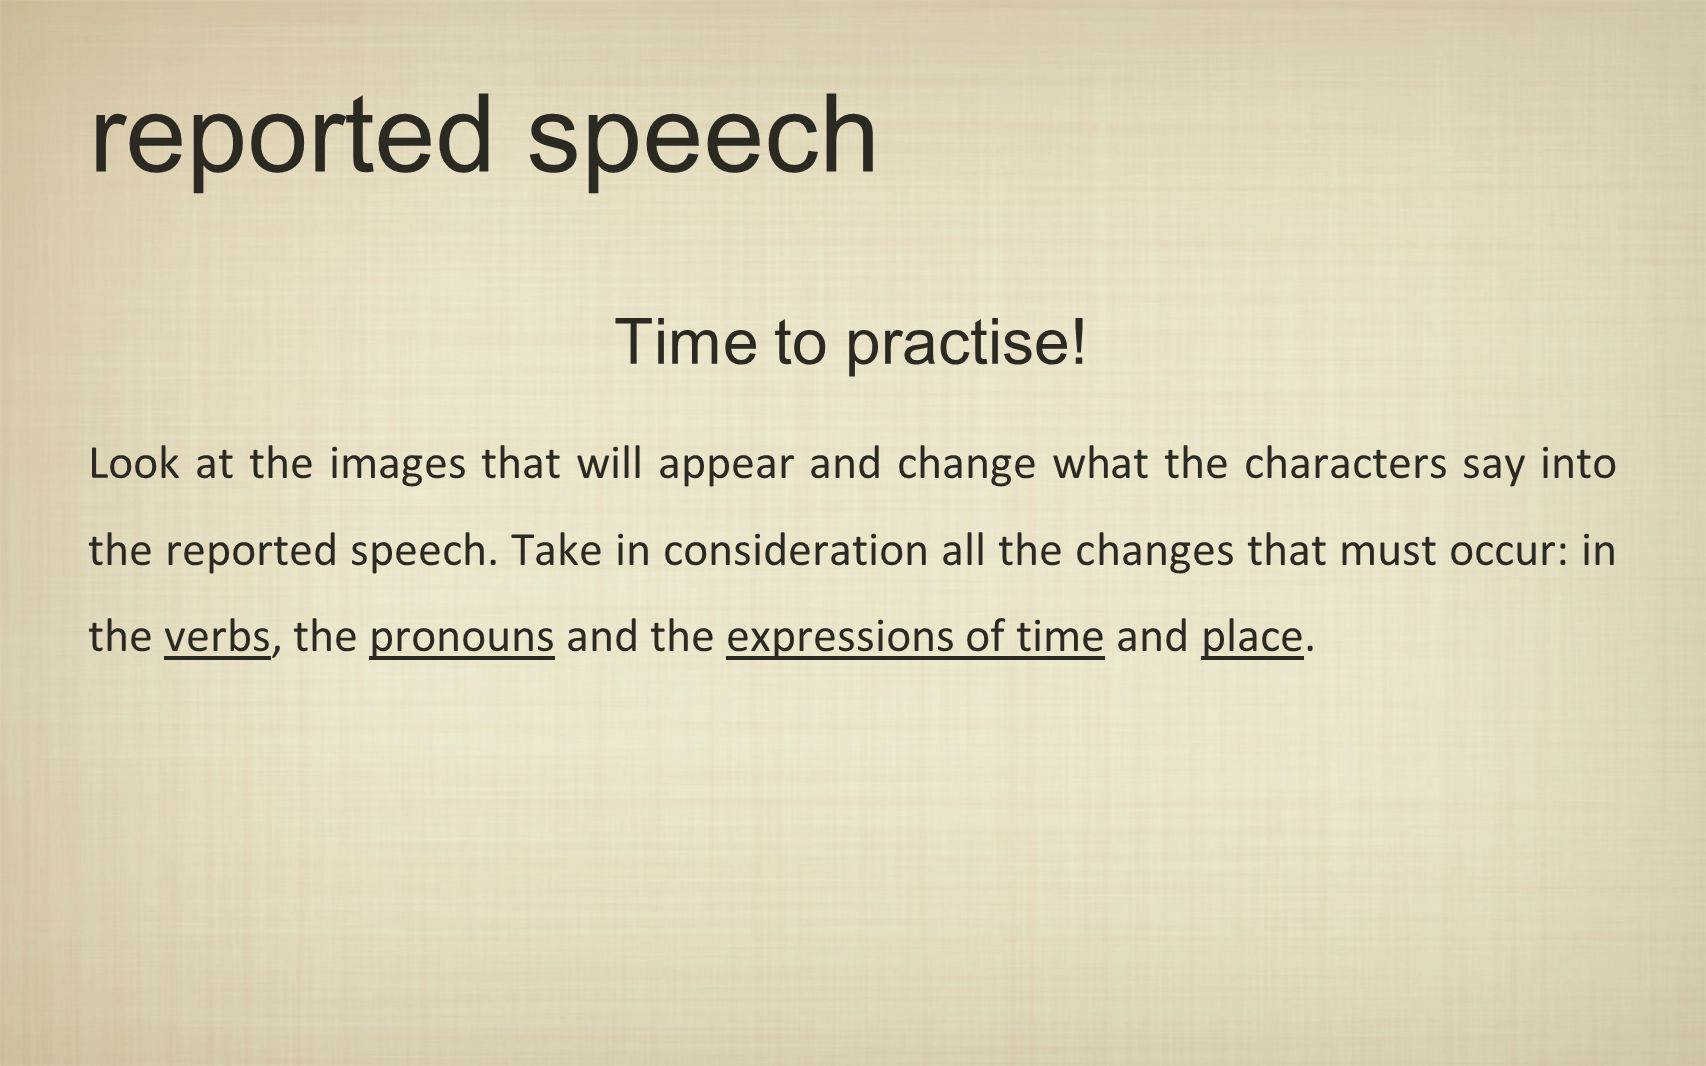 reported speech Time to practise!